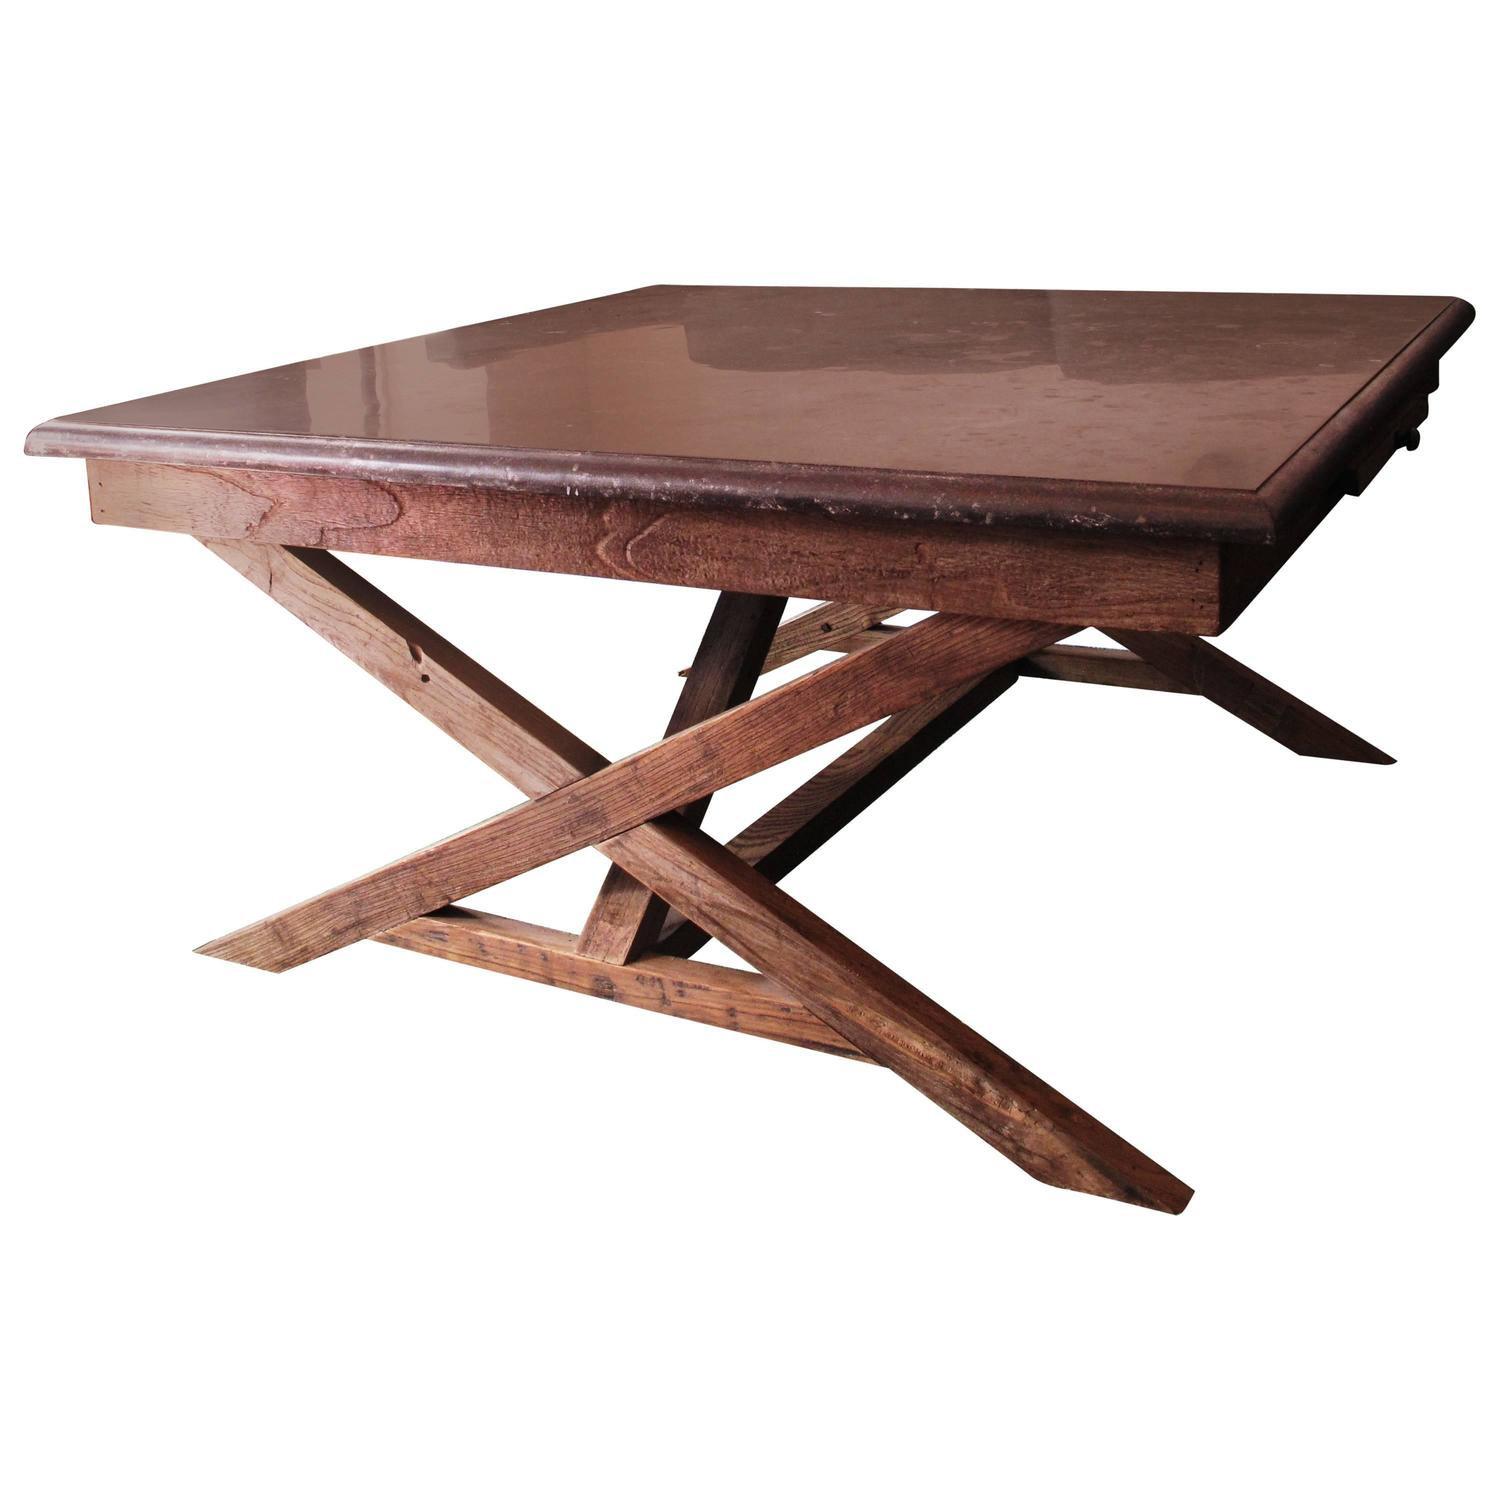 Reclaimed Wood Coffee Table With Bluestone Slab For Sale At 1stdibs